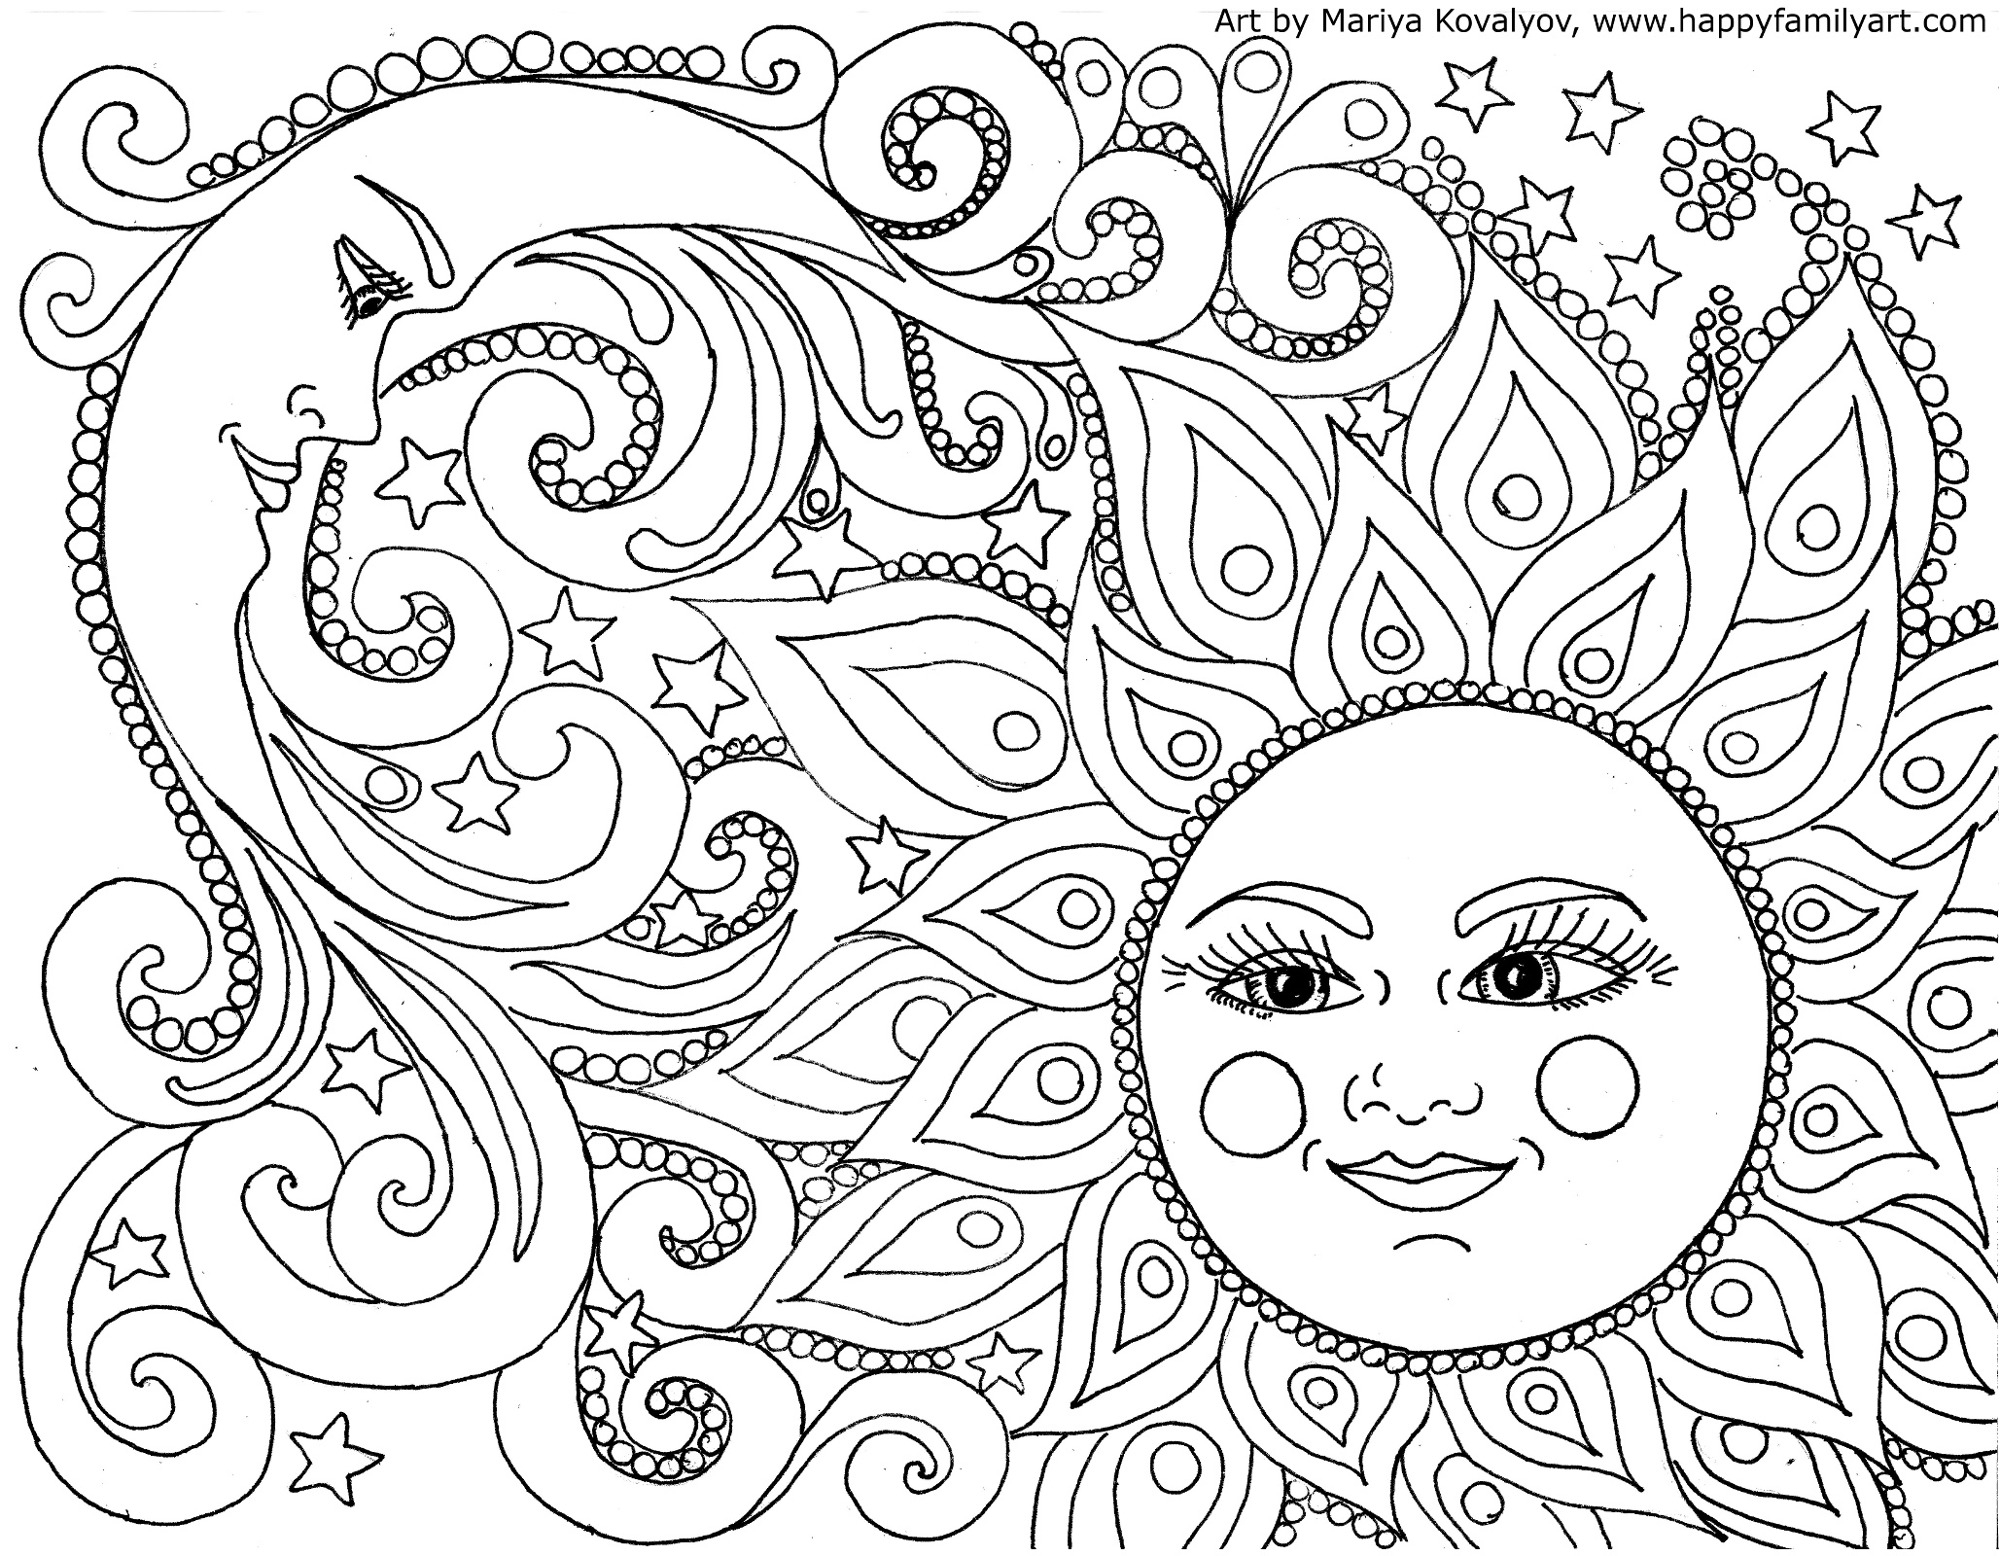 hippie coloring pages - hippie coloring pages